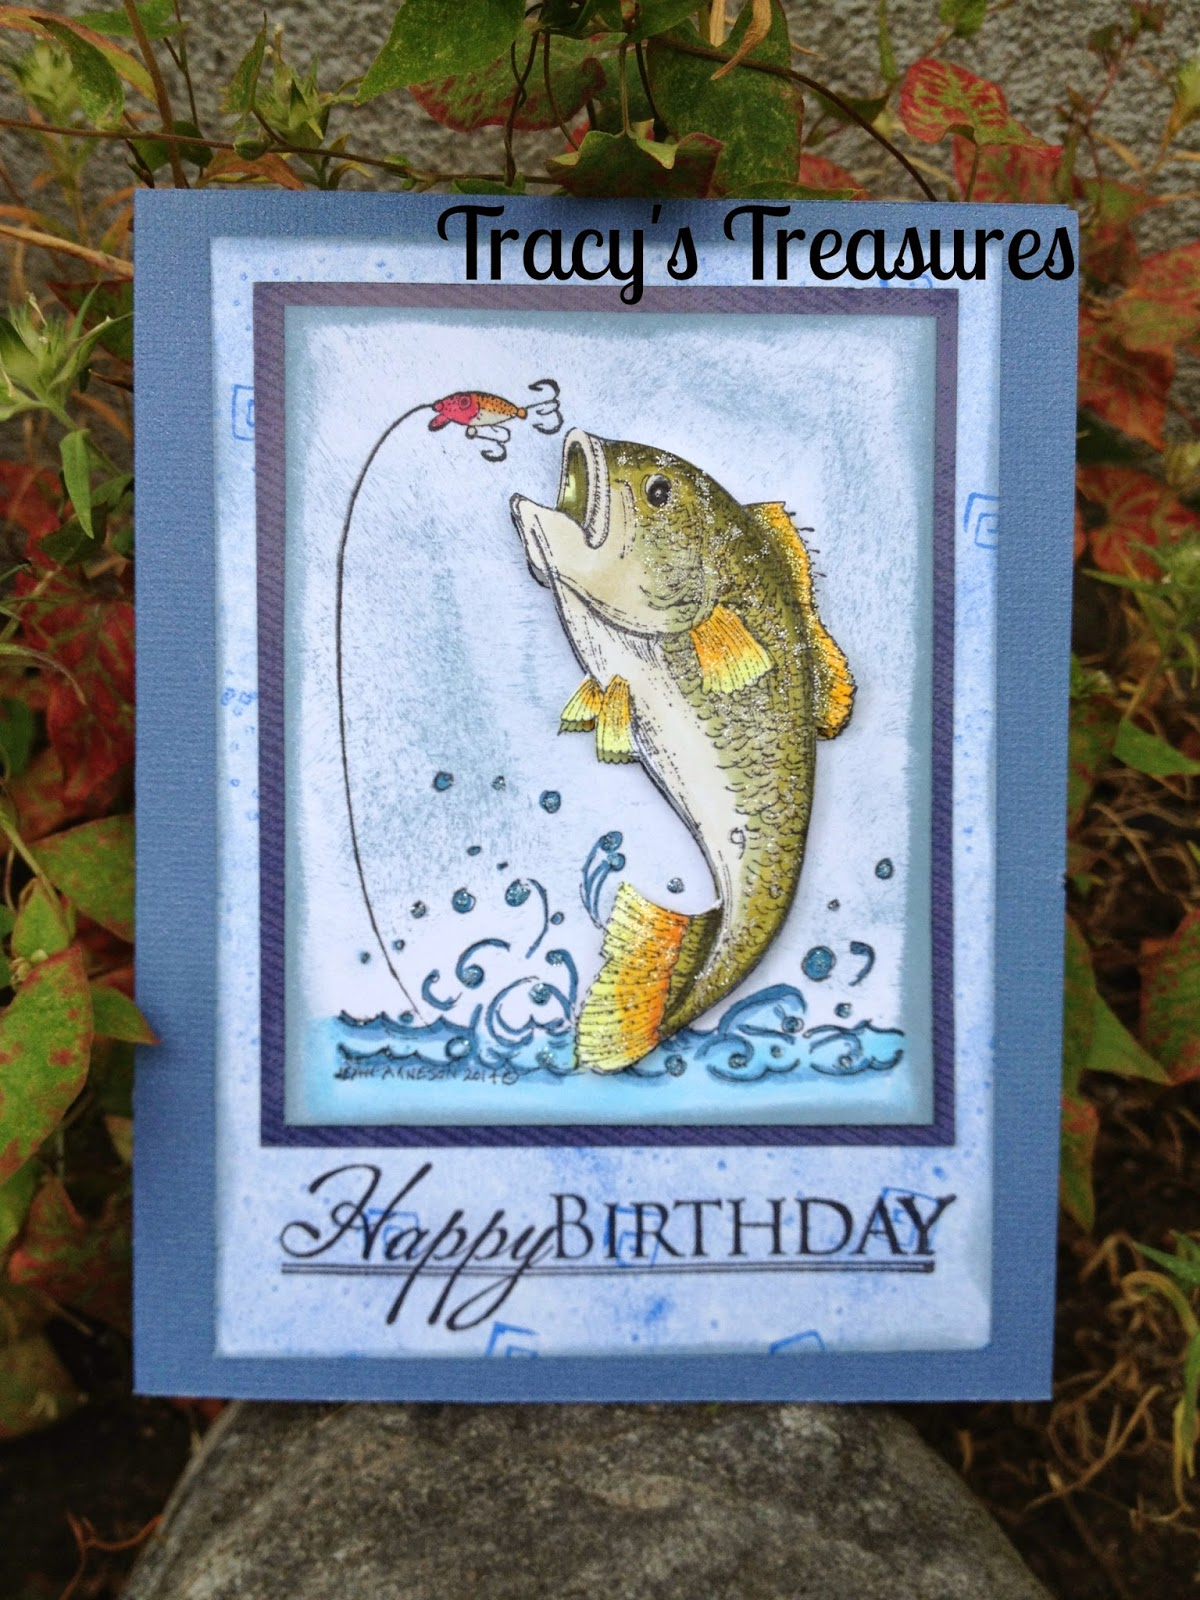 Tracys treasures the big catch birthday card for Fishing birthday cards